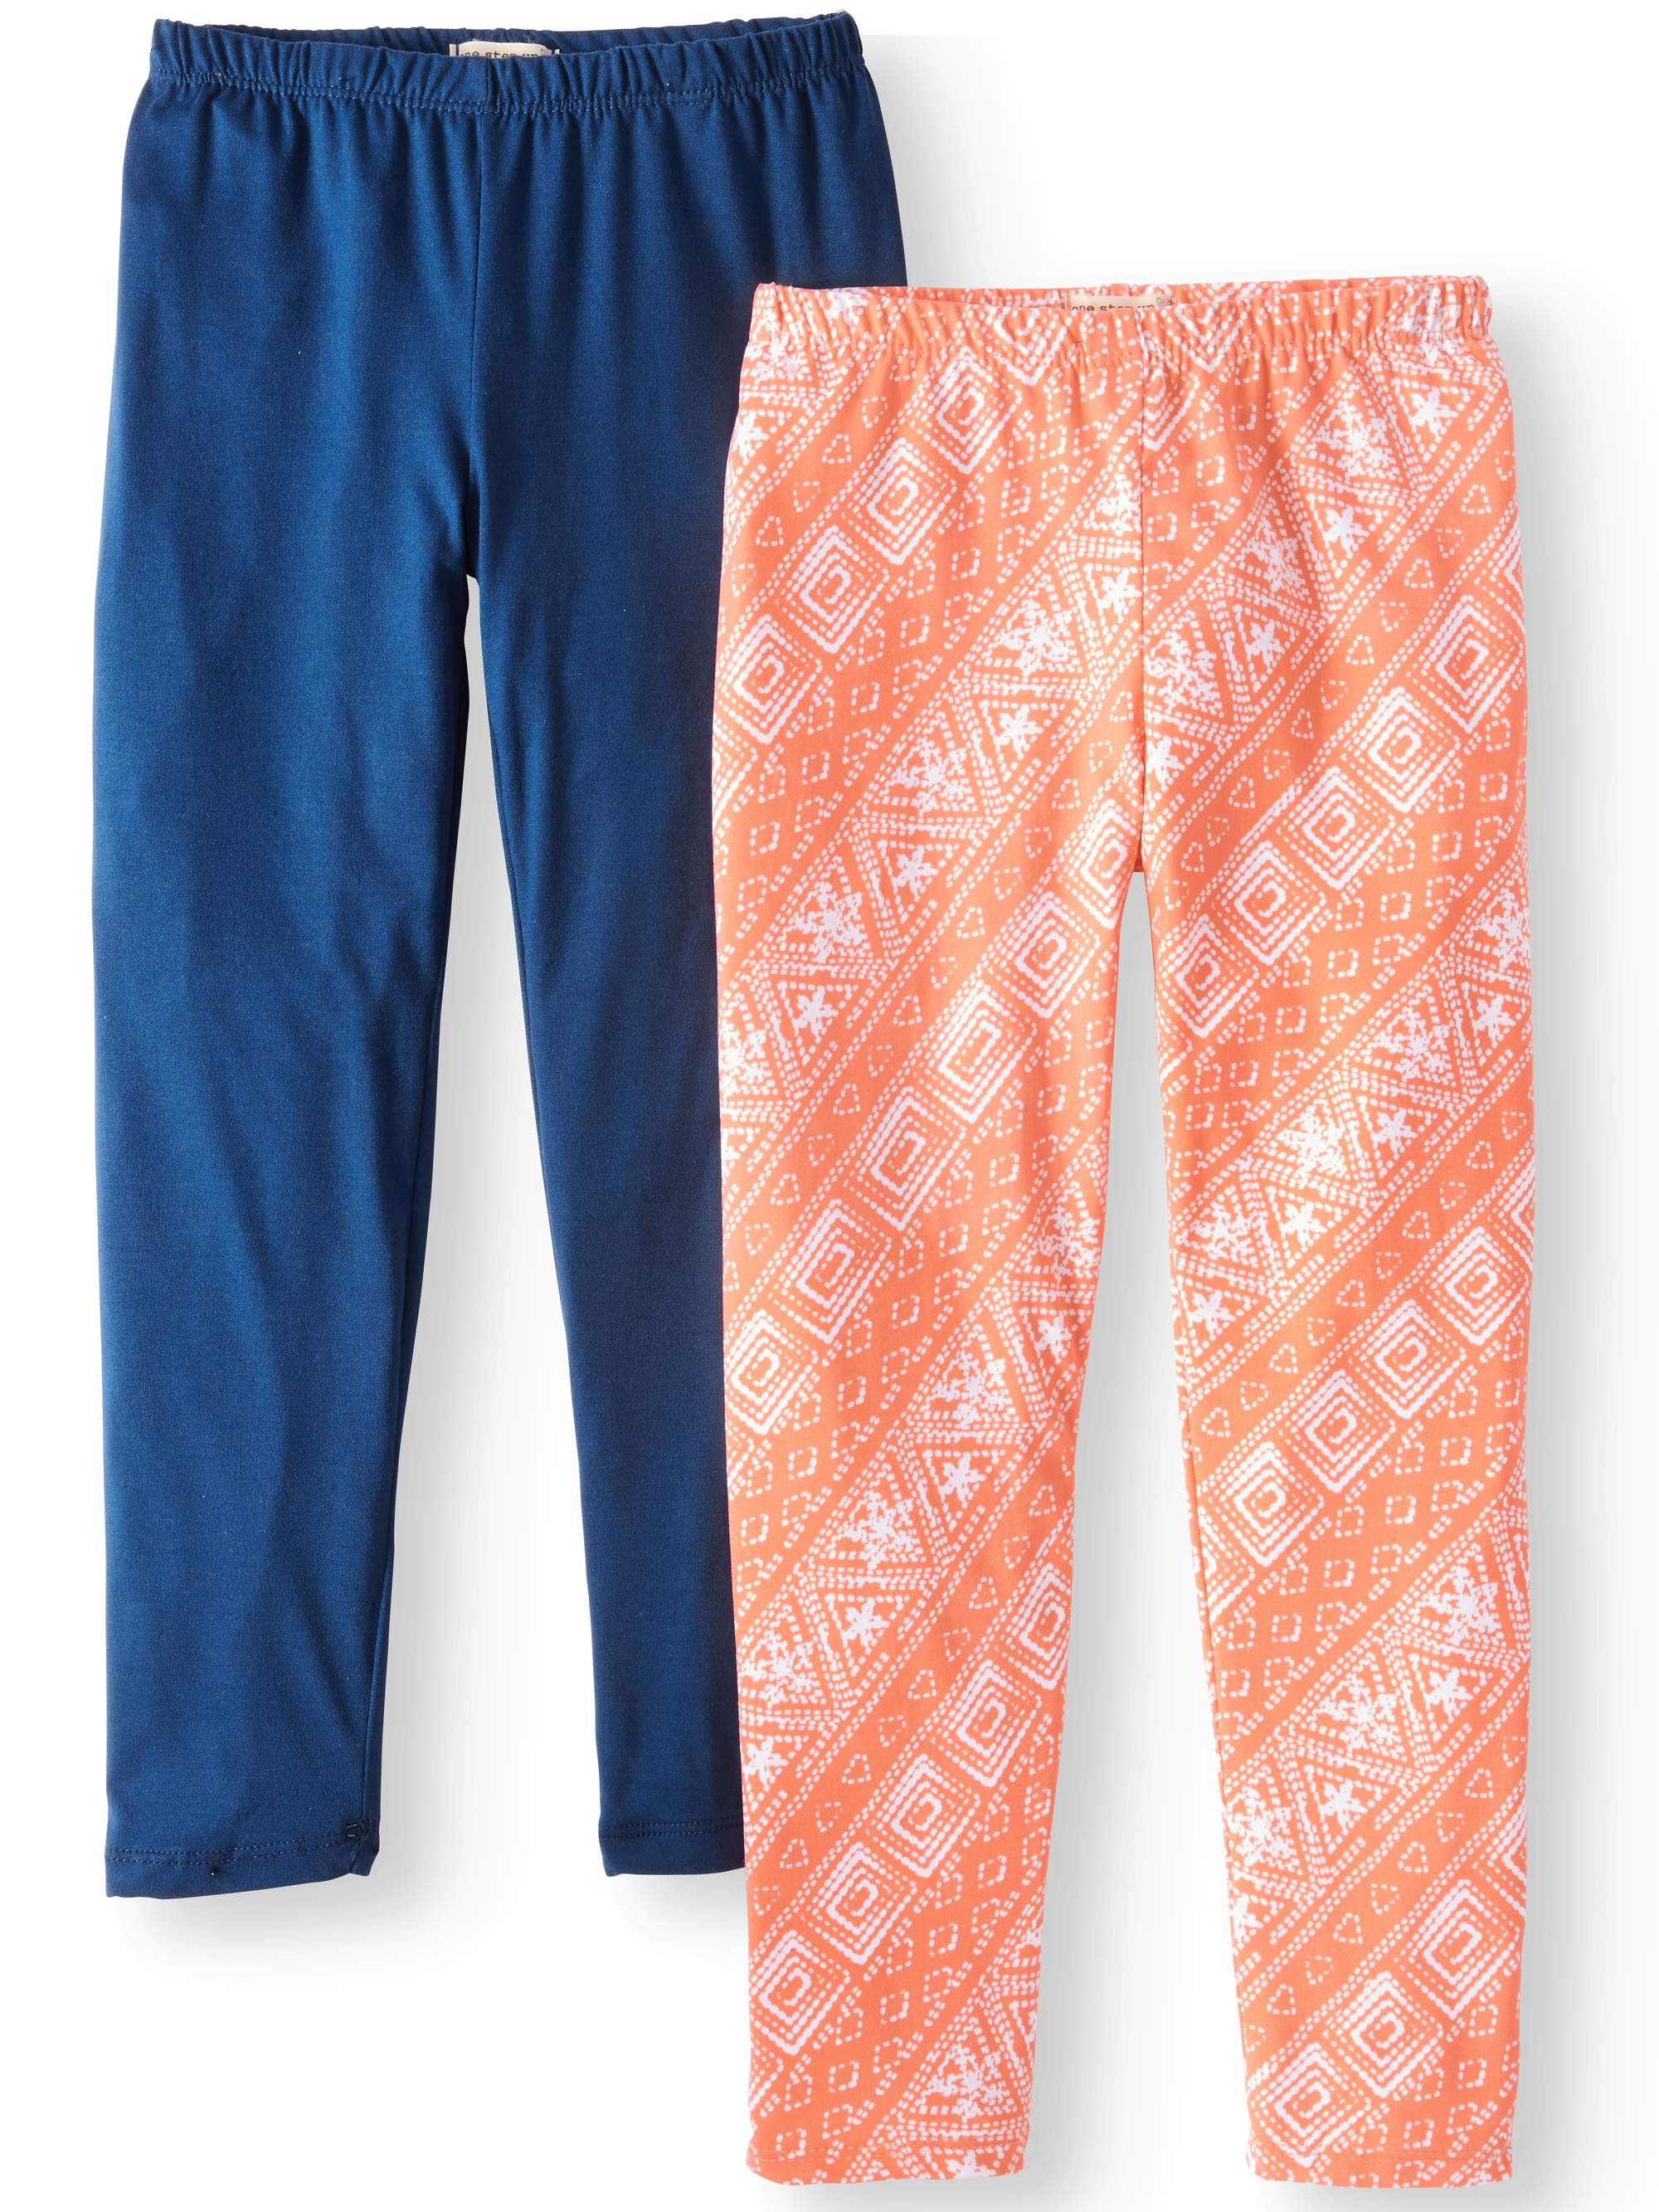 Solid and Printed Leggings, 2-Pack (Little Girls & Big Girls)